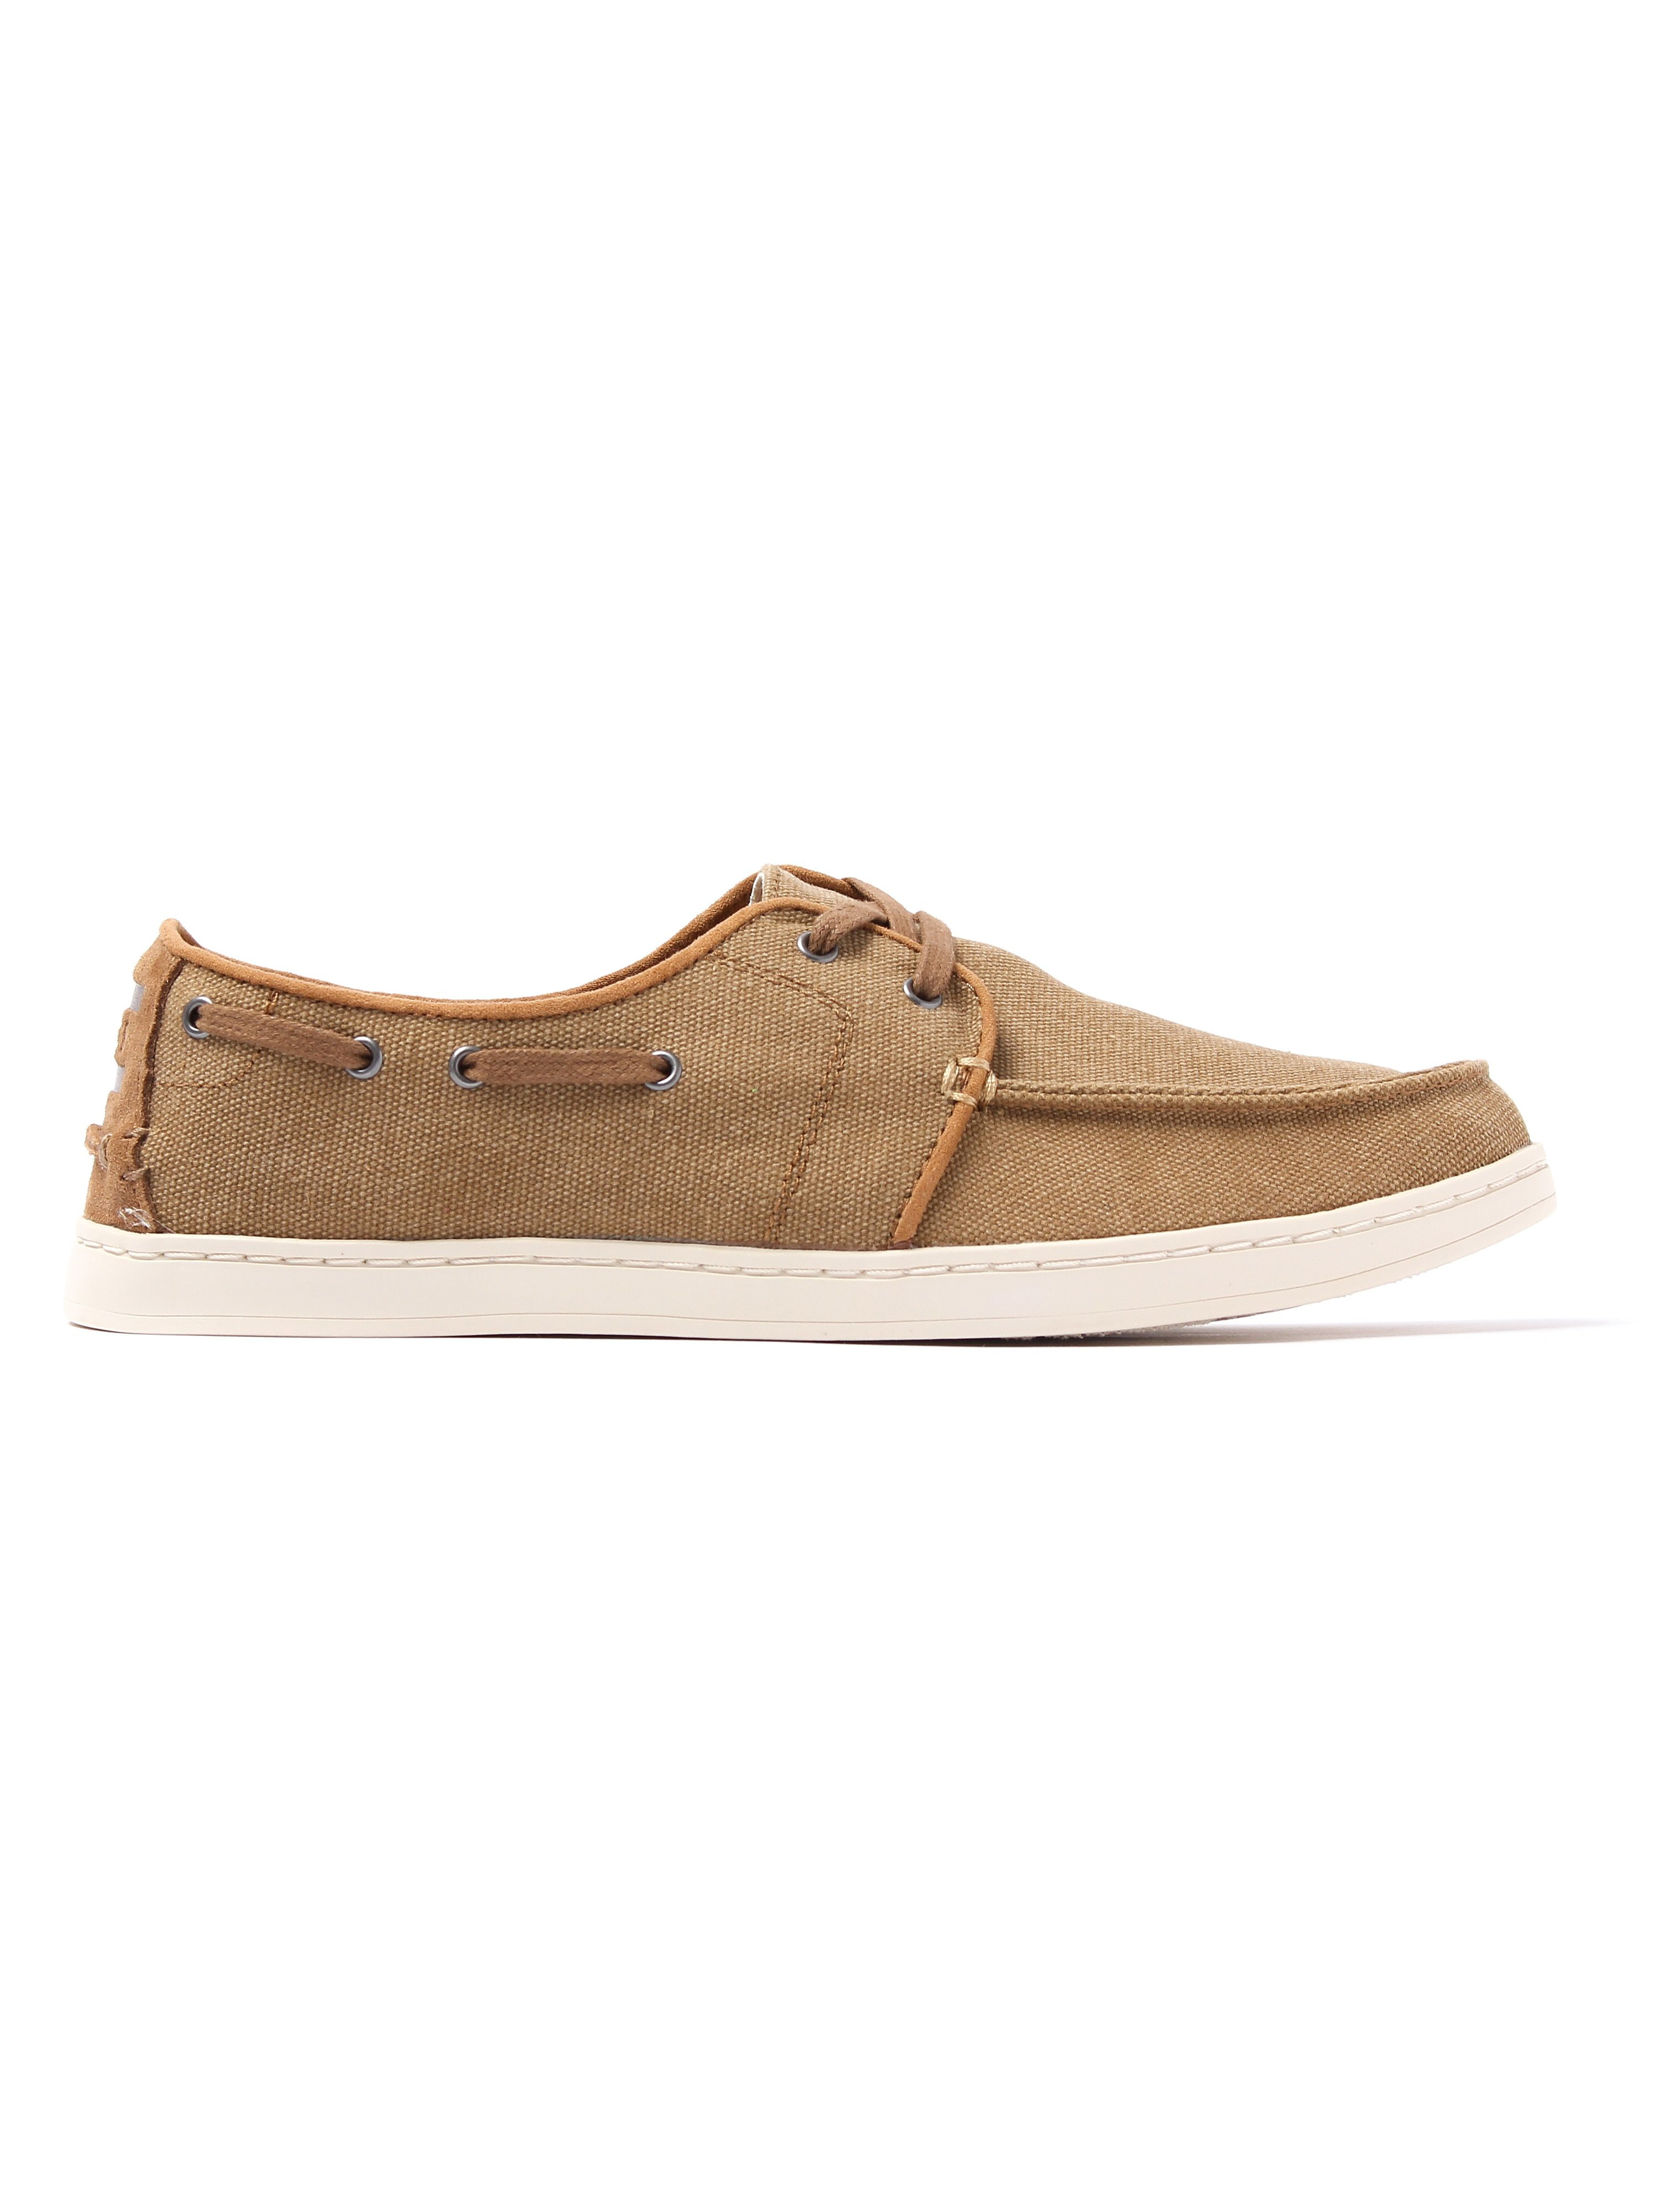 Toms Men's Culver Washed Canvas Boat Shoes - Toffee